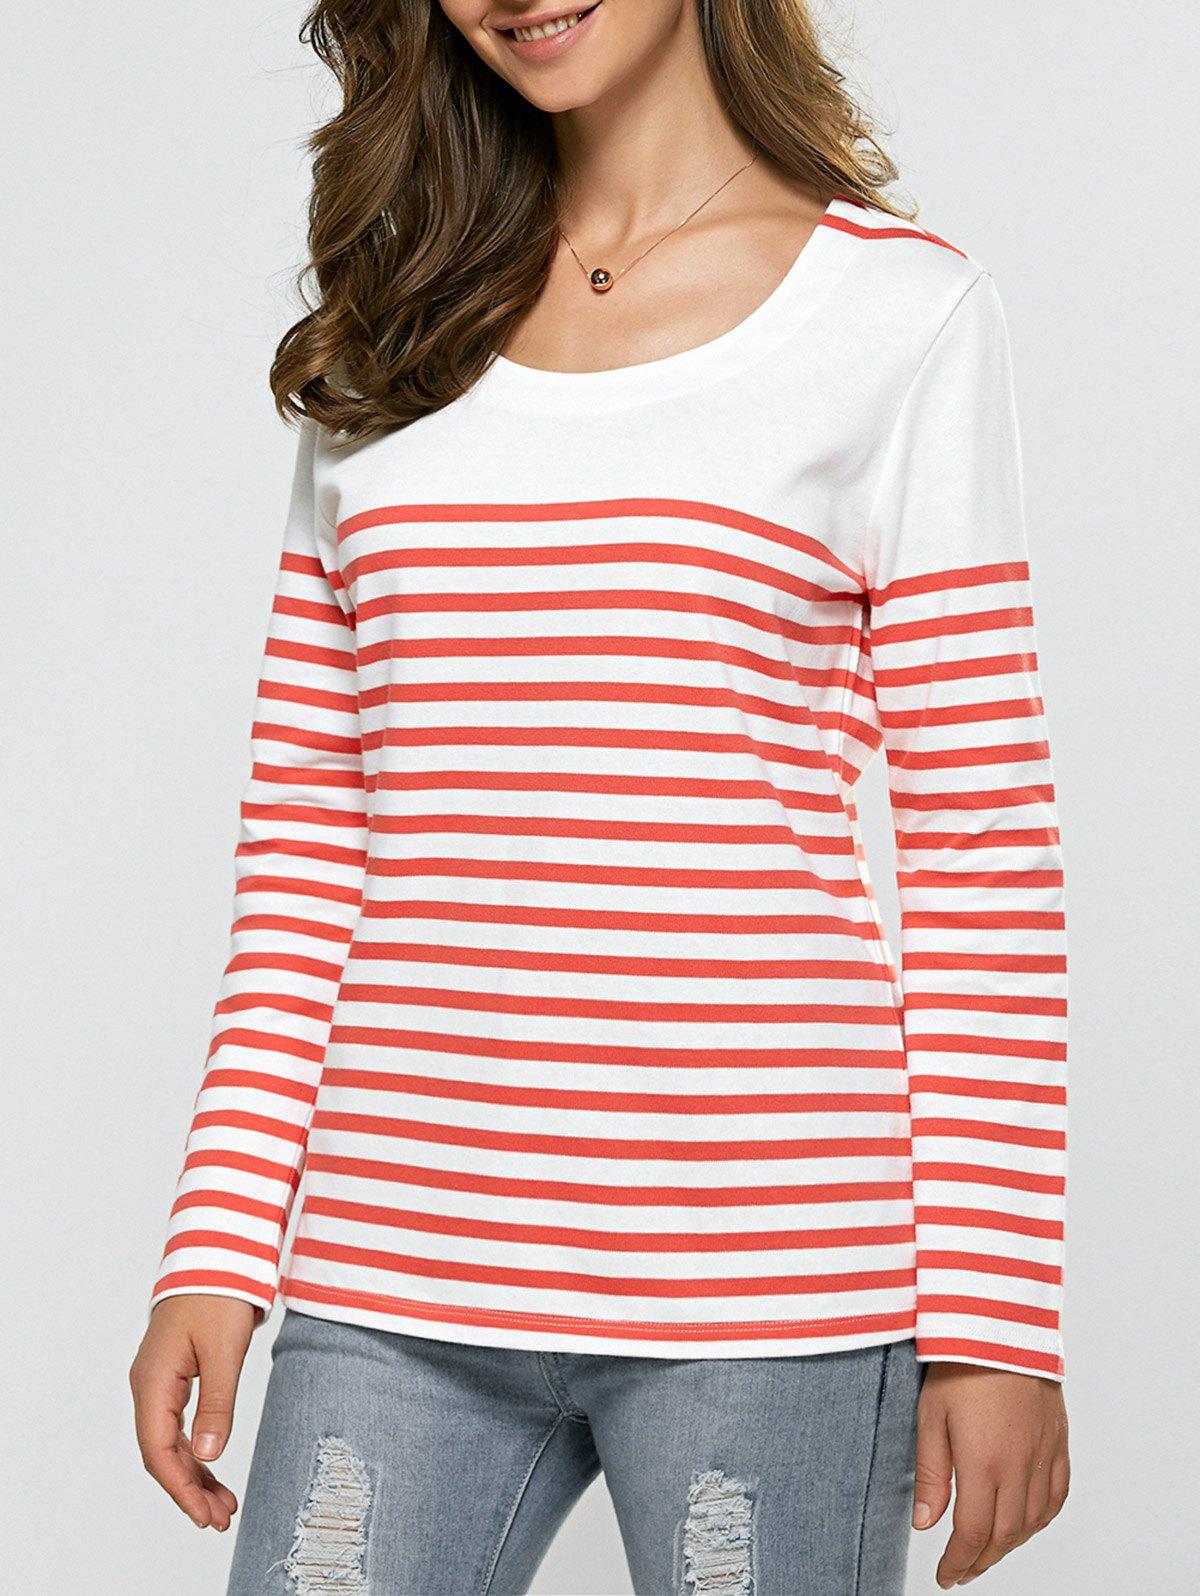 Pull à rayures Casual Rouge et Blanc M